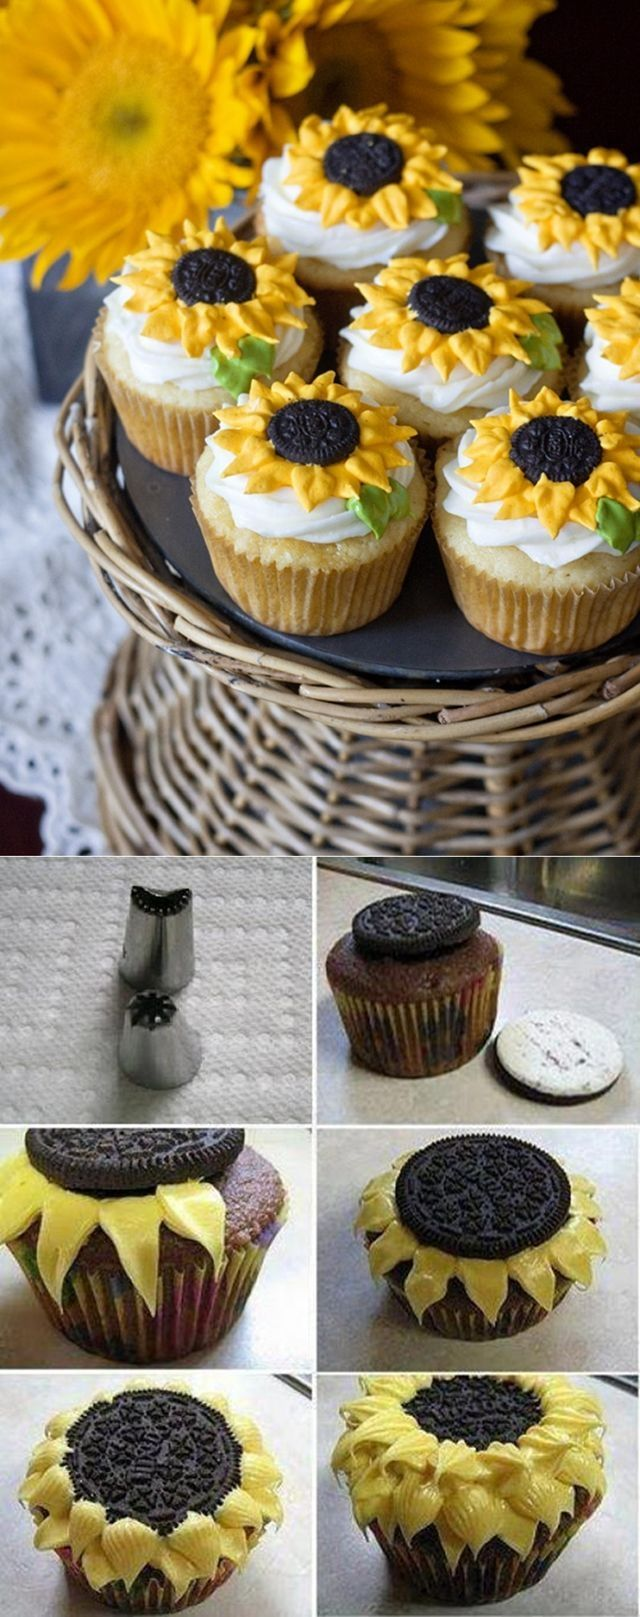 DIY Sunflower Cupcakes